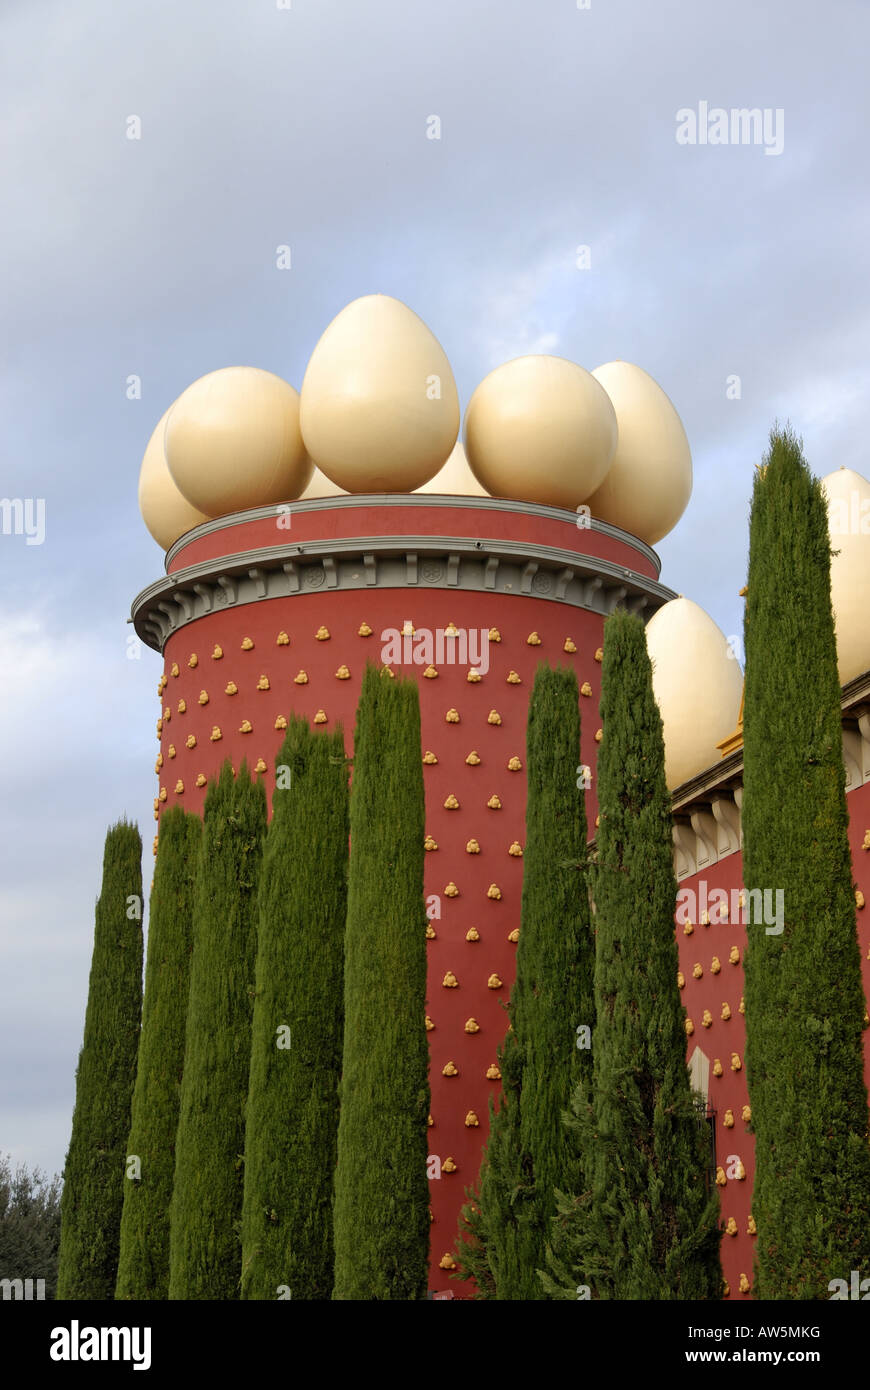 Museo Dali Barcelona.Dali Museum Barcelona Spain Stock Photo 16474083 Alamy